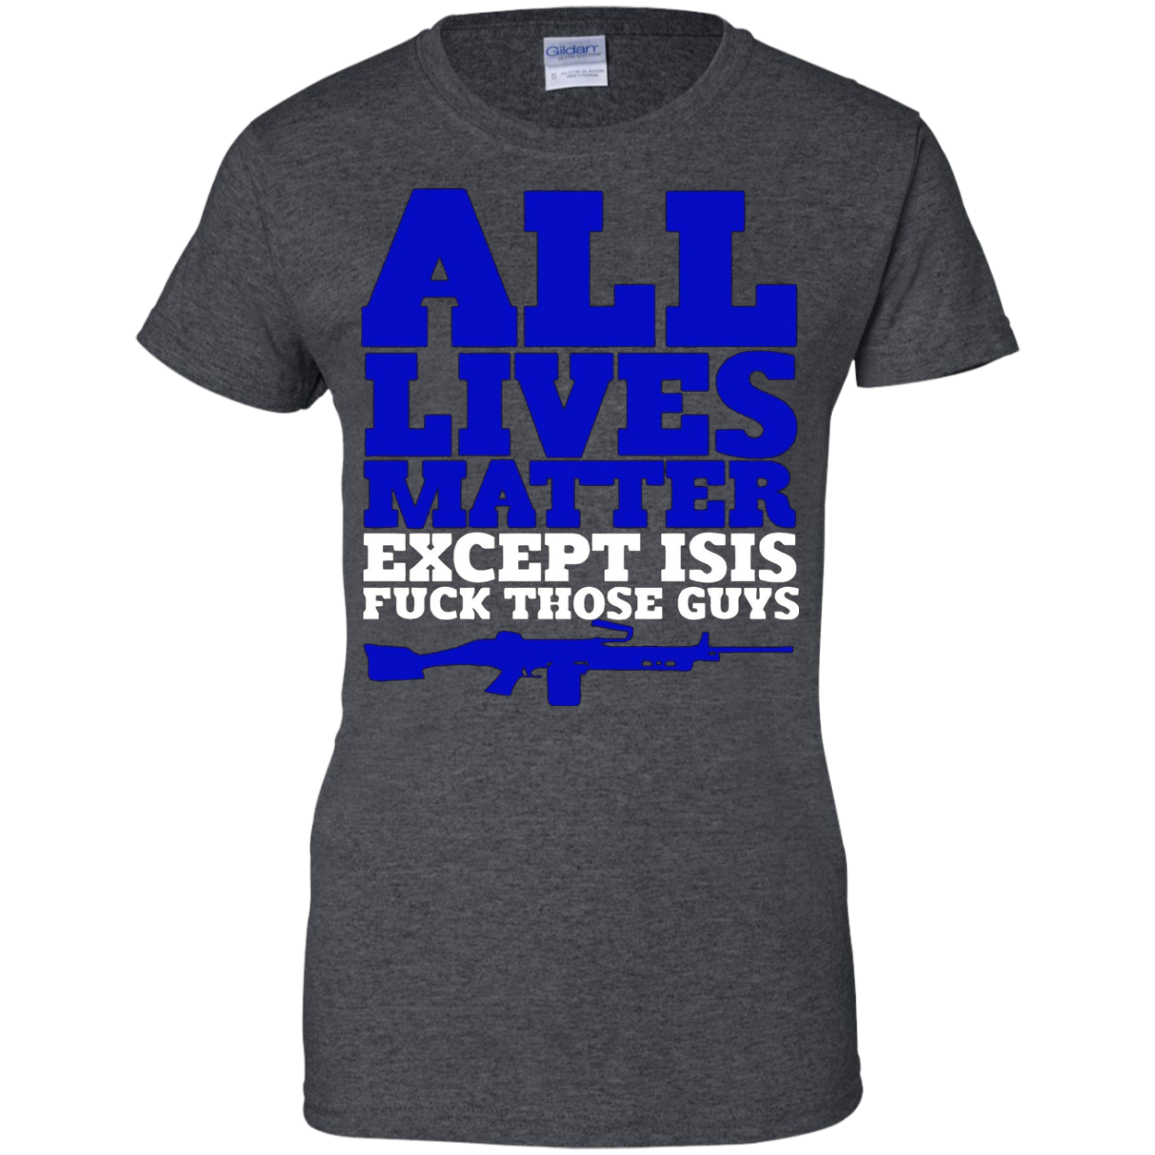 All Lives Matter Except Isis Fuck Those Guys - Gun Tshirt